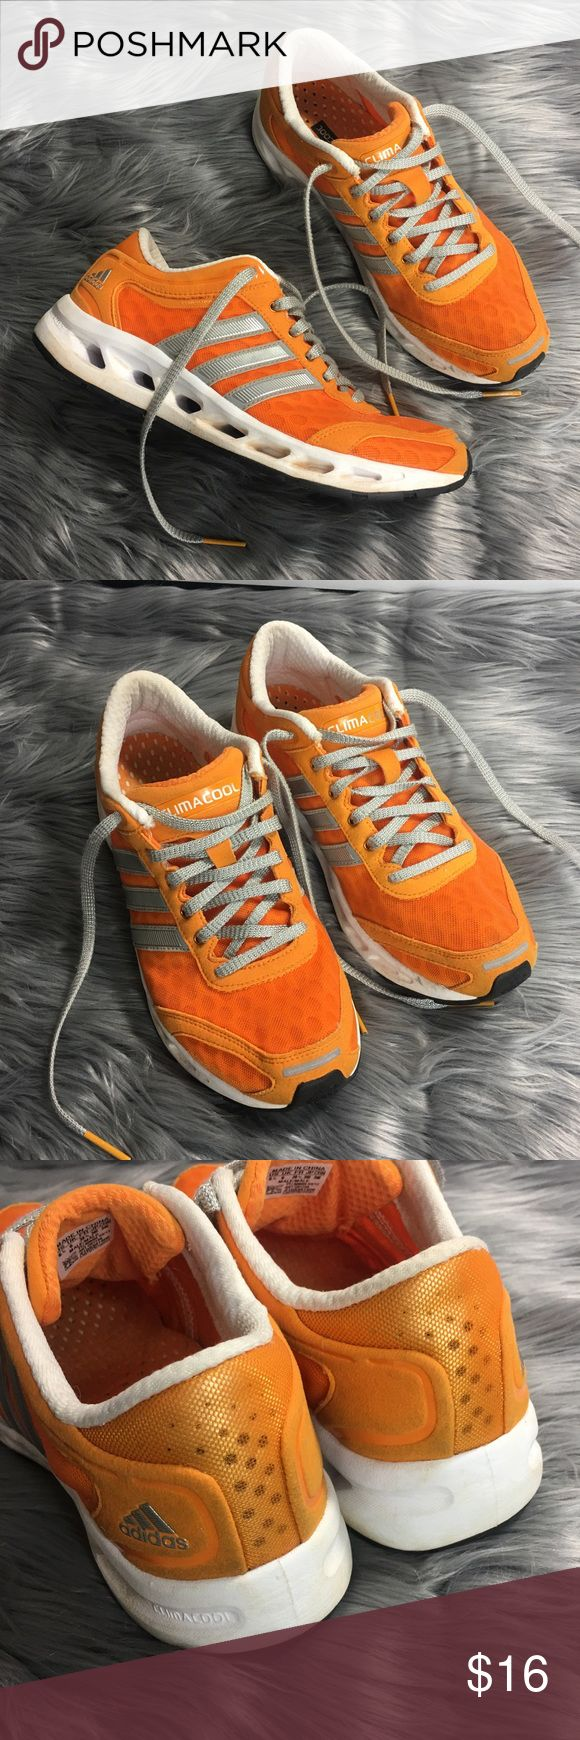 adidas Climacool Orange Silver Running Shoes adidas Climacool Orange Silver Gray Mens Sz 6.5 Womens 8.5 Running Shoes  Nice pre-owned condition, light signs of wear, no flaws Perfect for UT Vols fans!   IK1 adidas Shoes Sneakers